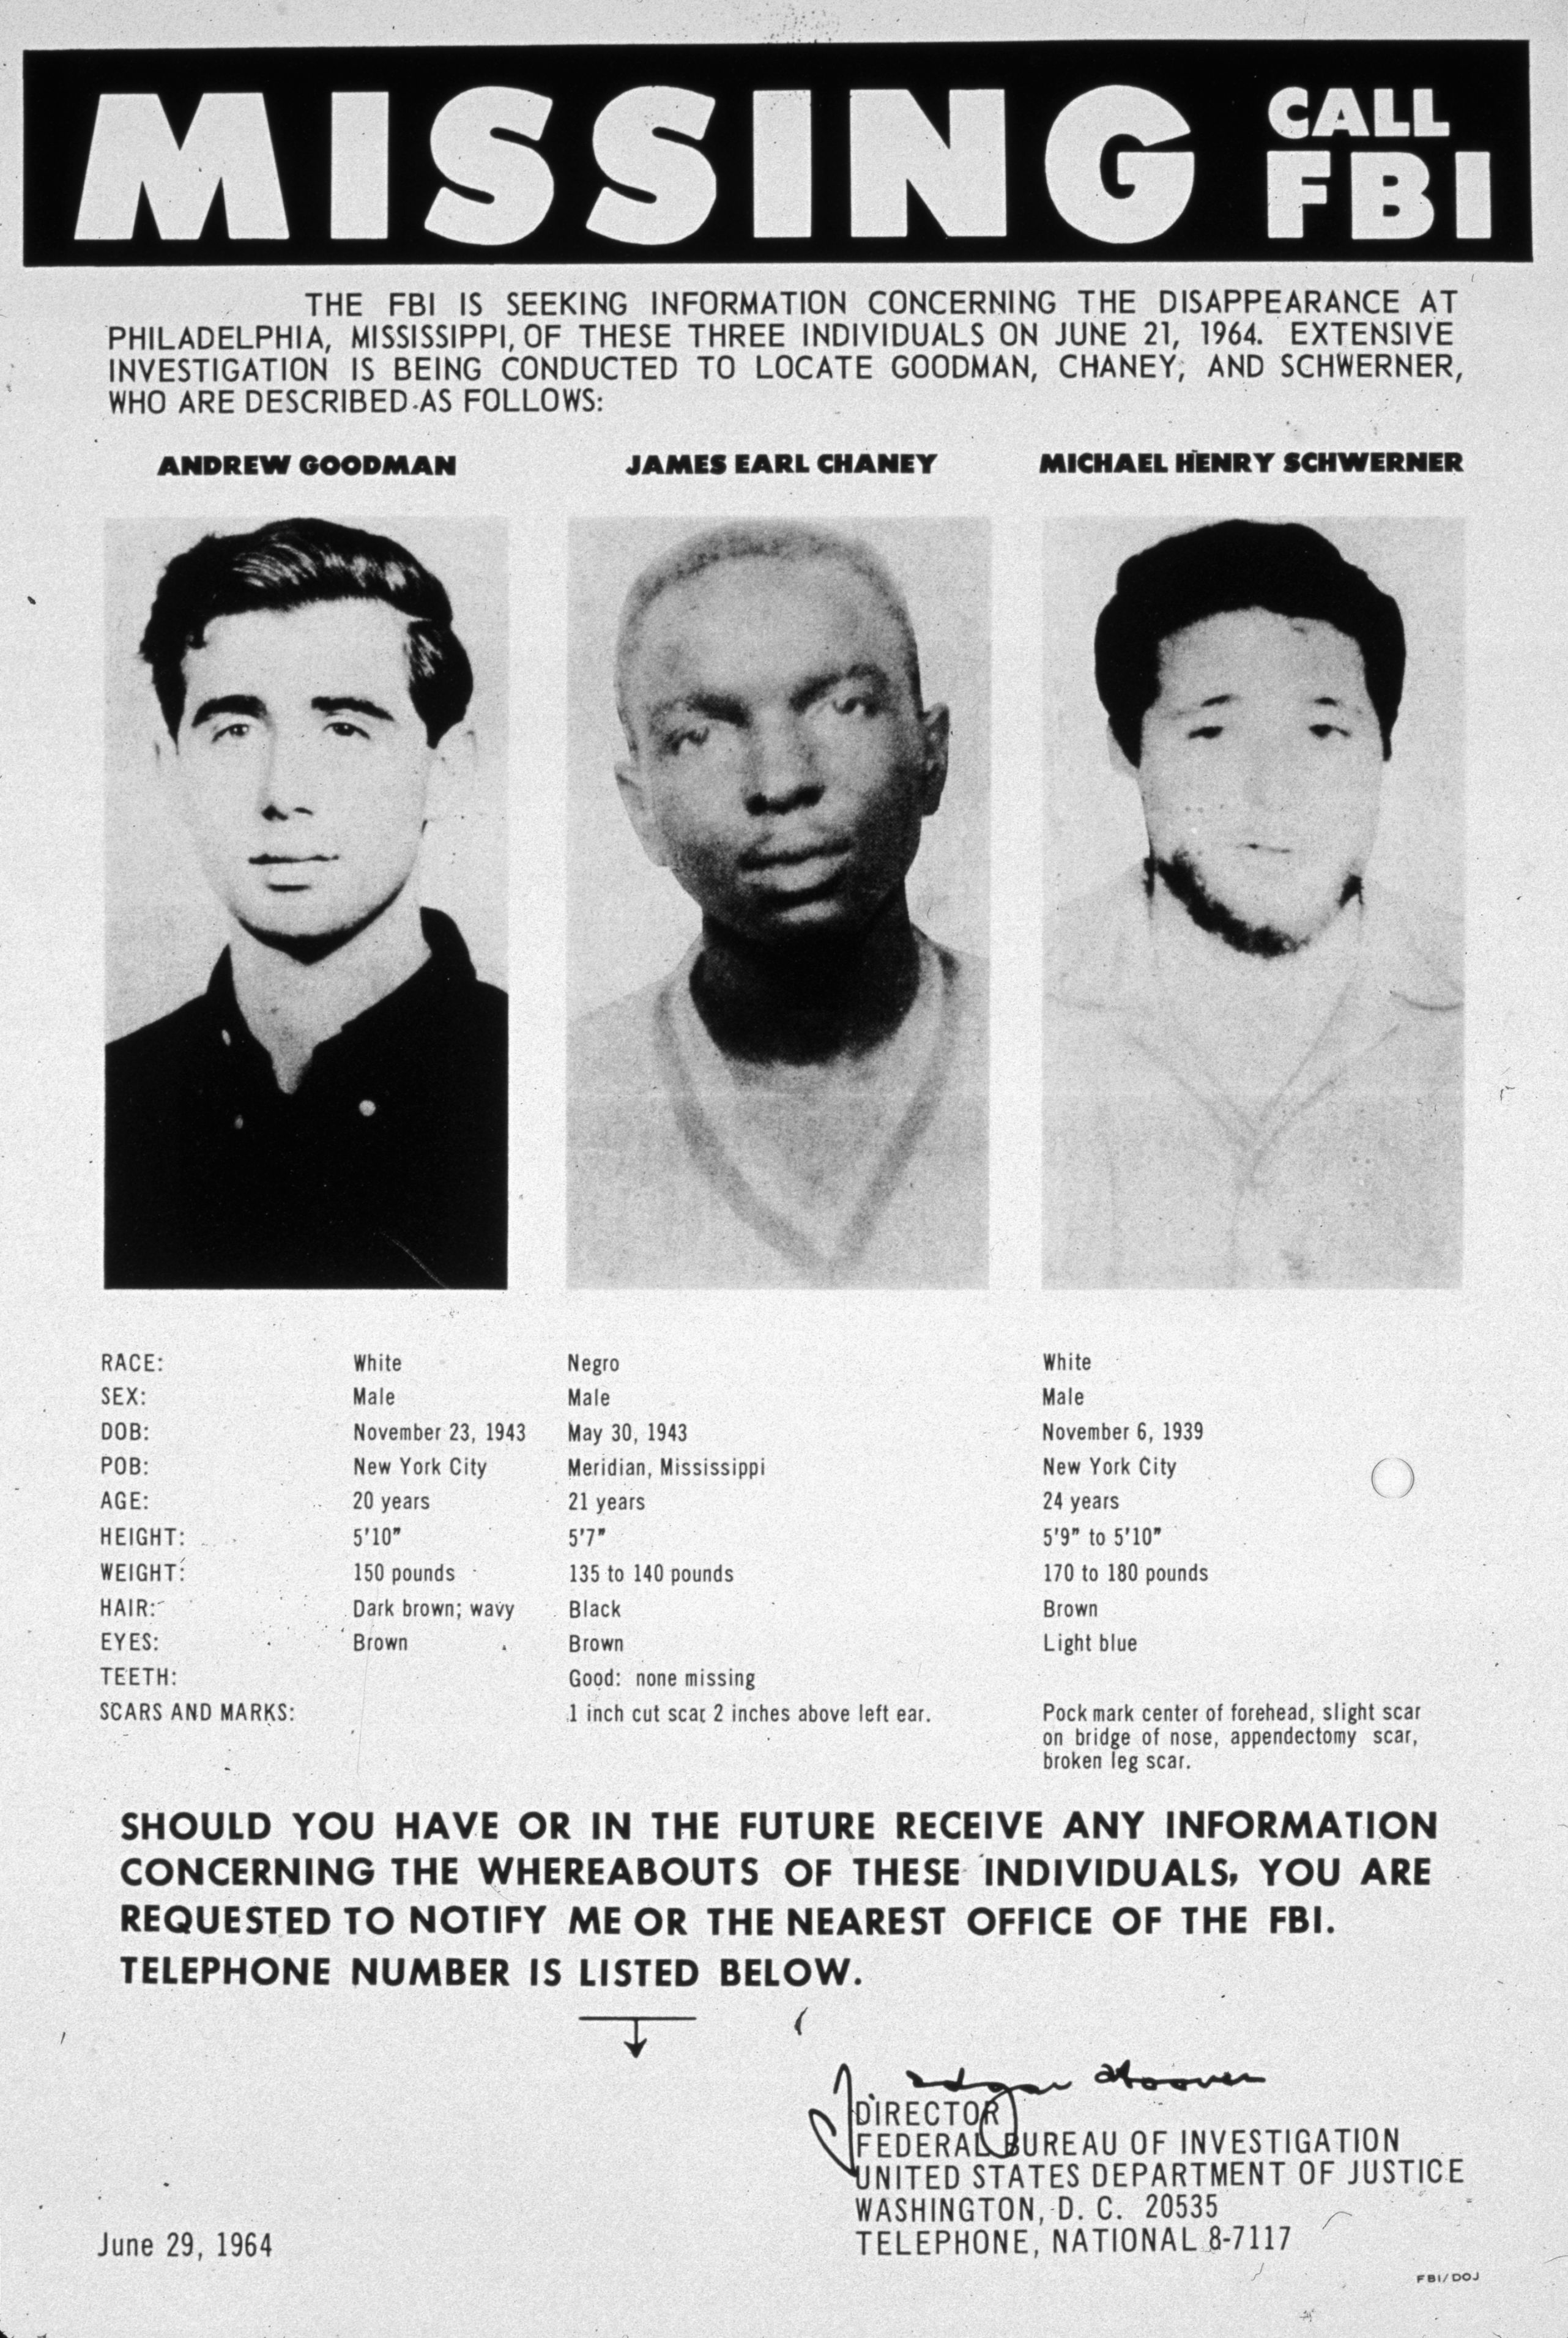 A 1964 FBI poster seeking information as to the whereabouts of Andrew Goodman, James Chaney, and Michael Schwerner. (Credit: MPI/Getty Images)